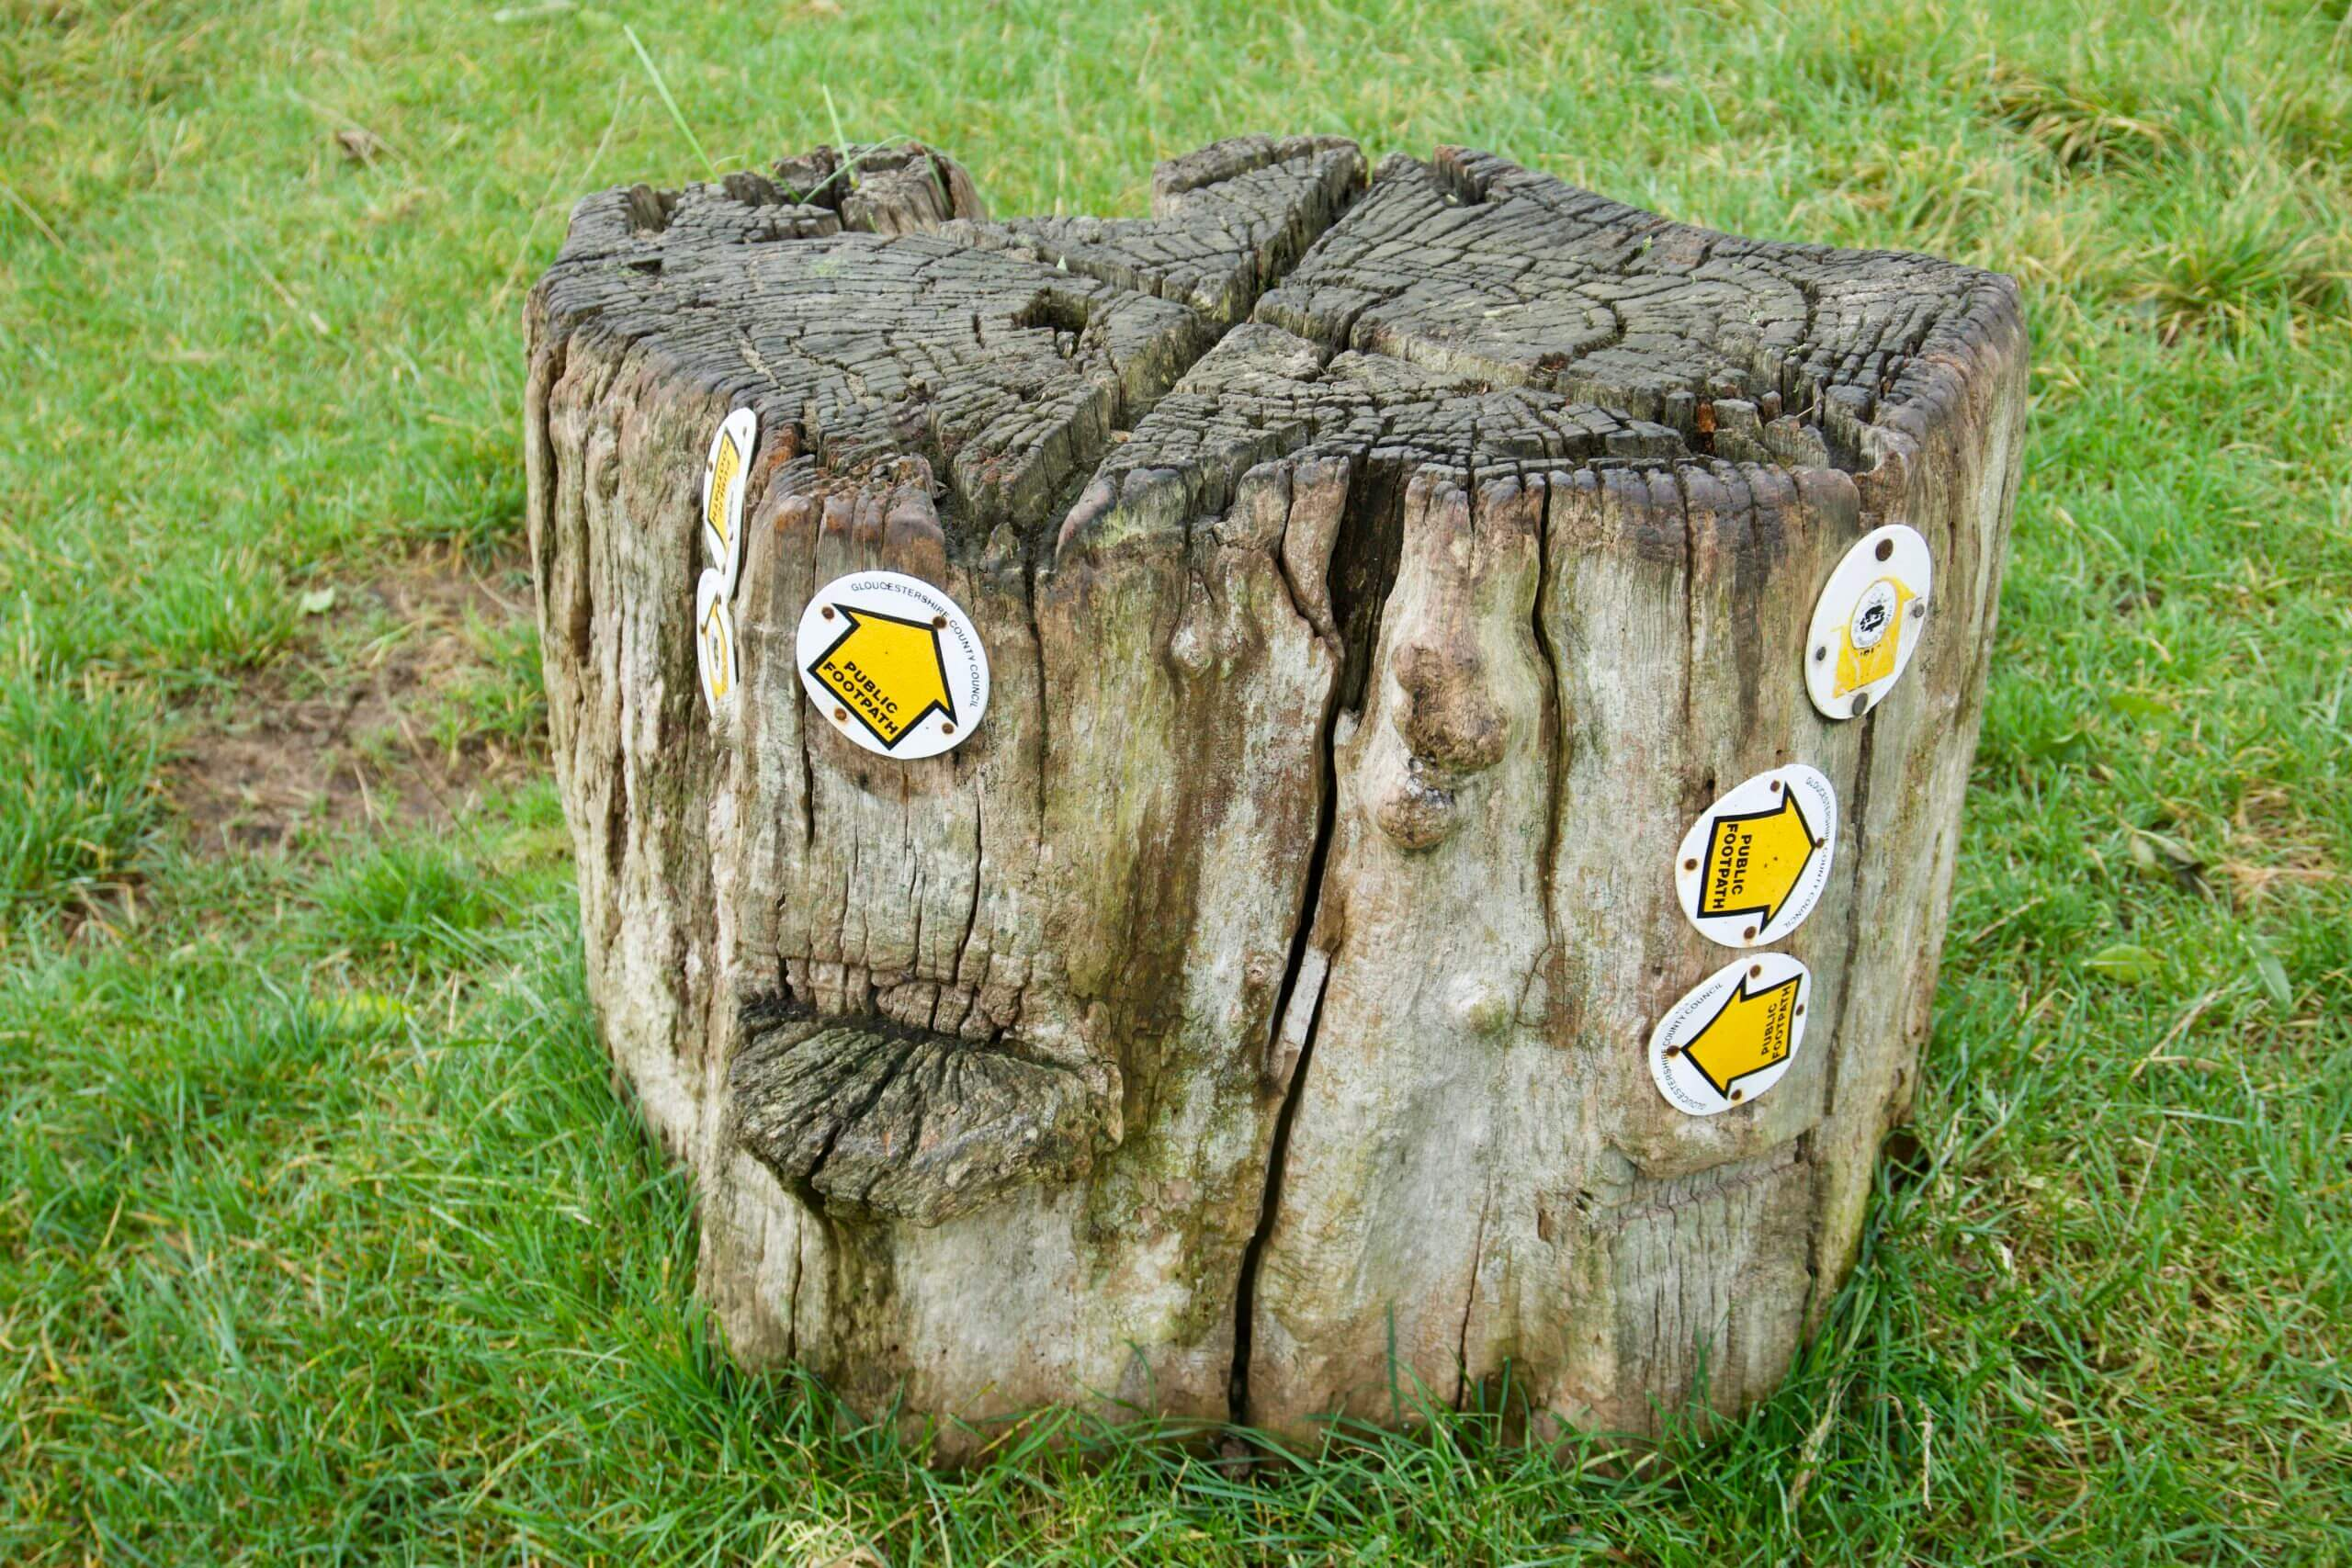 Trail markers on a stump